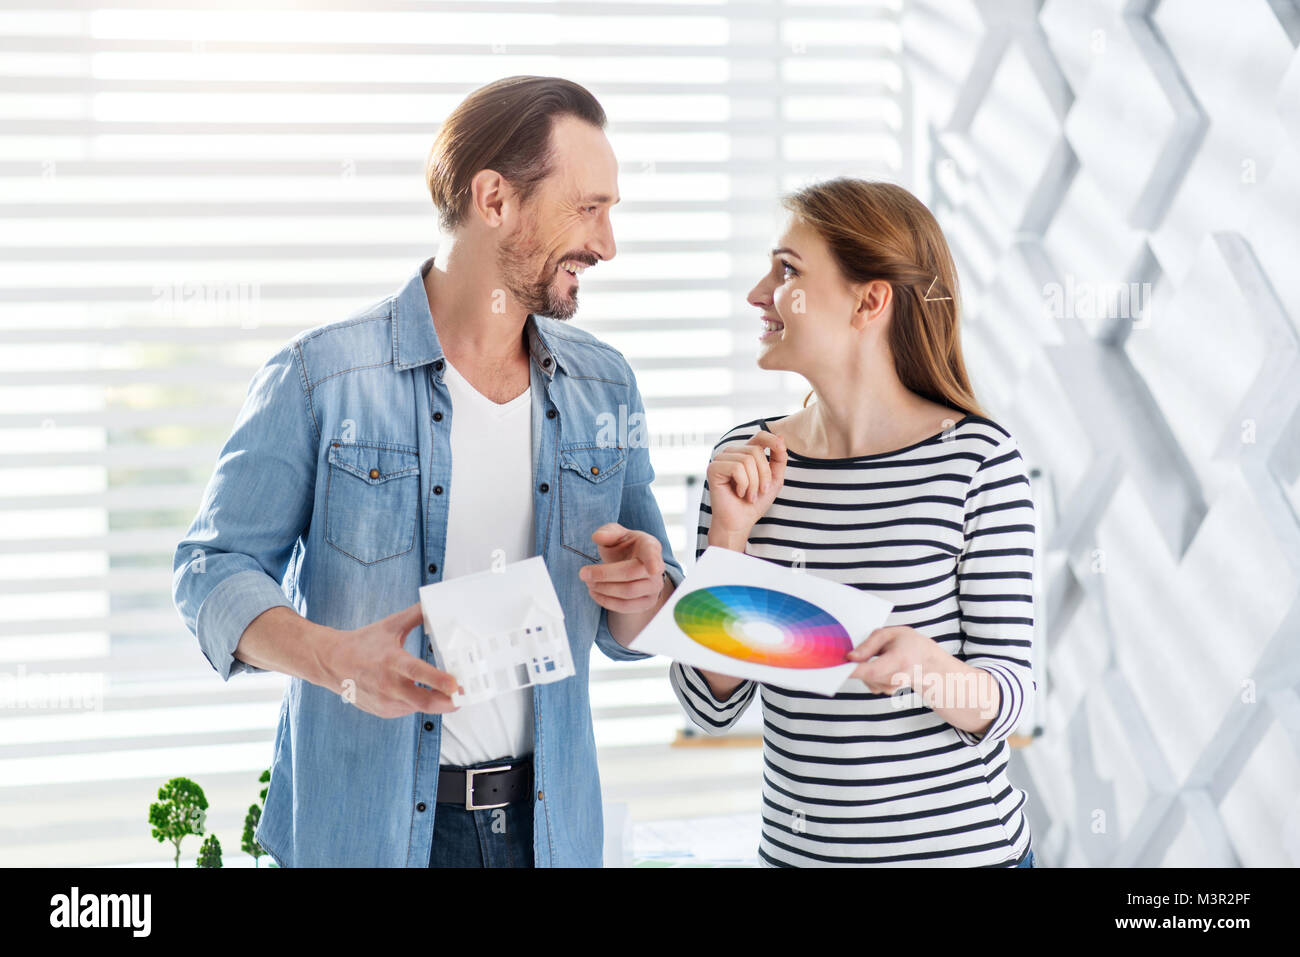 Inspired architects looking at each other - Stock Image